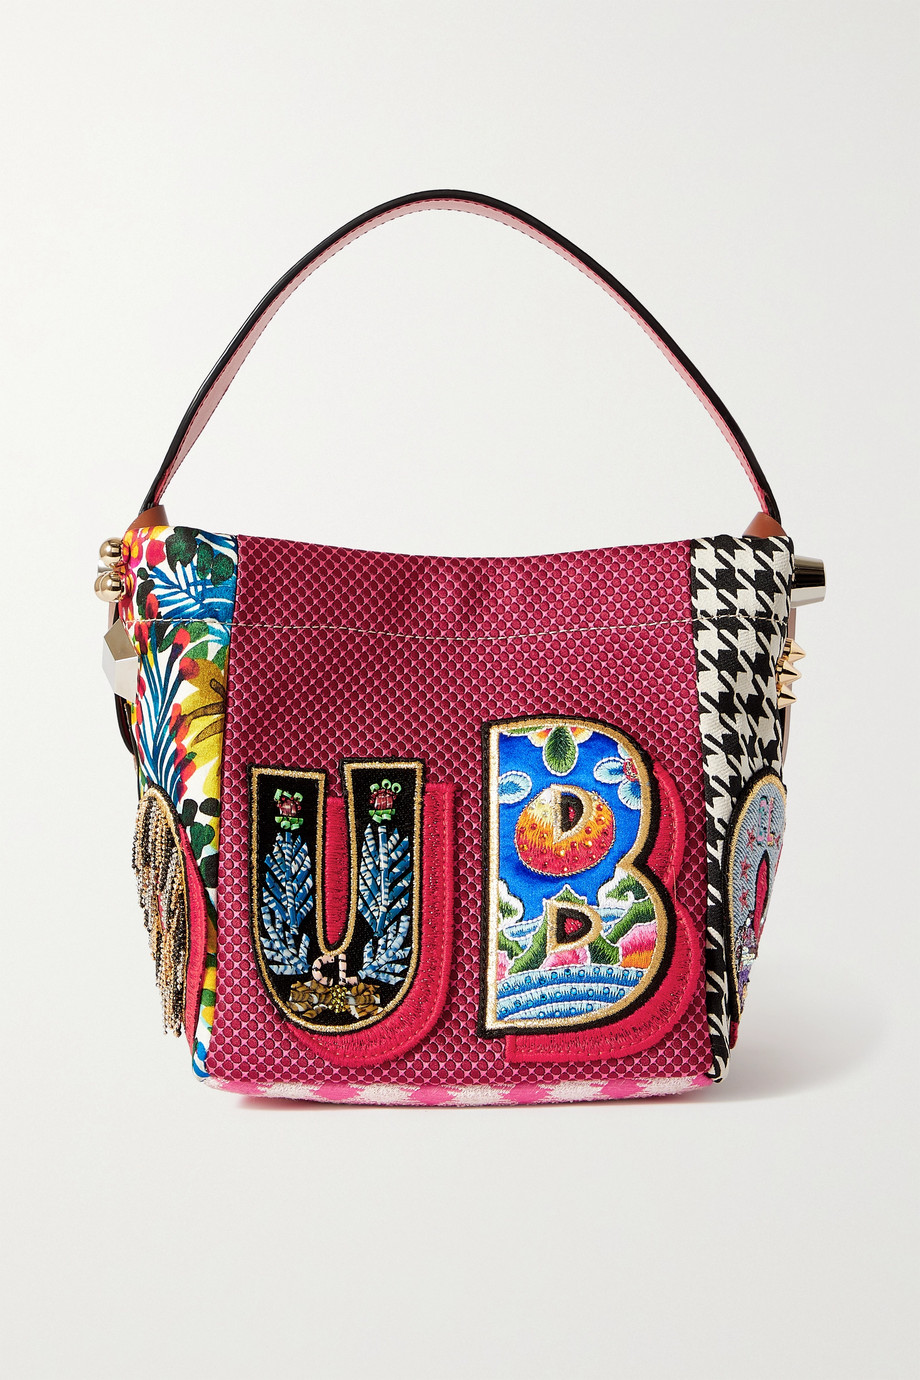 CHRISTIAN LOUBOUTIN Caracaba mini leather-trimmed appliquéd patchwork canvas tote